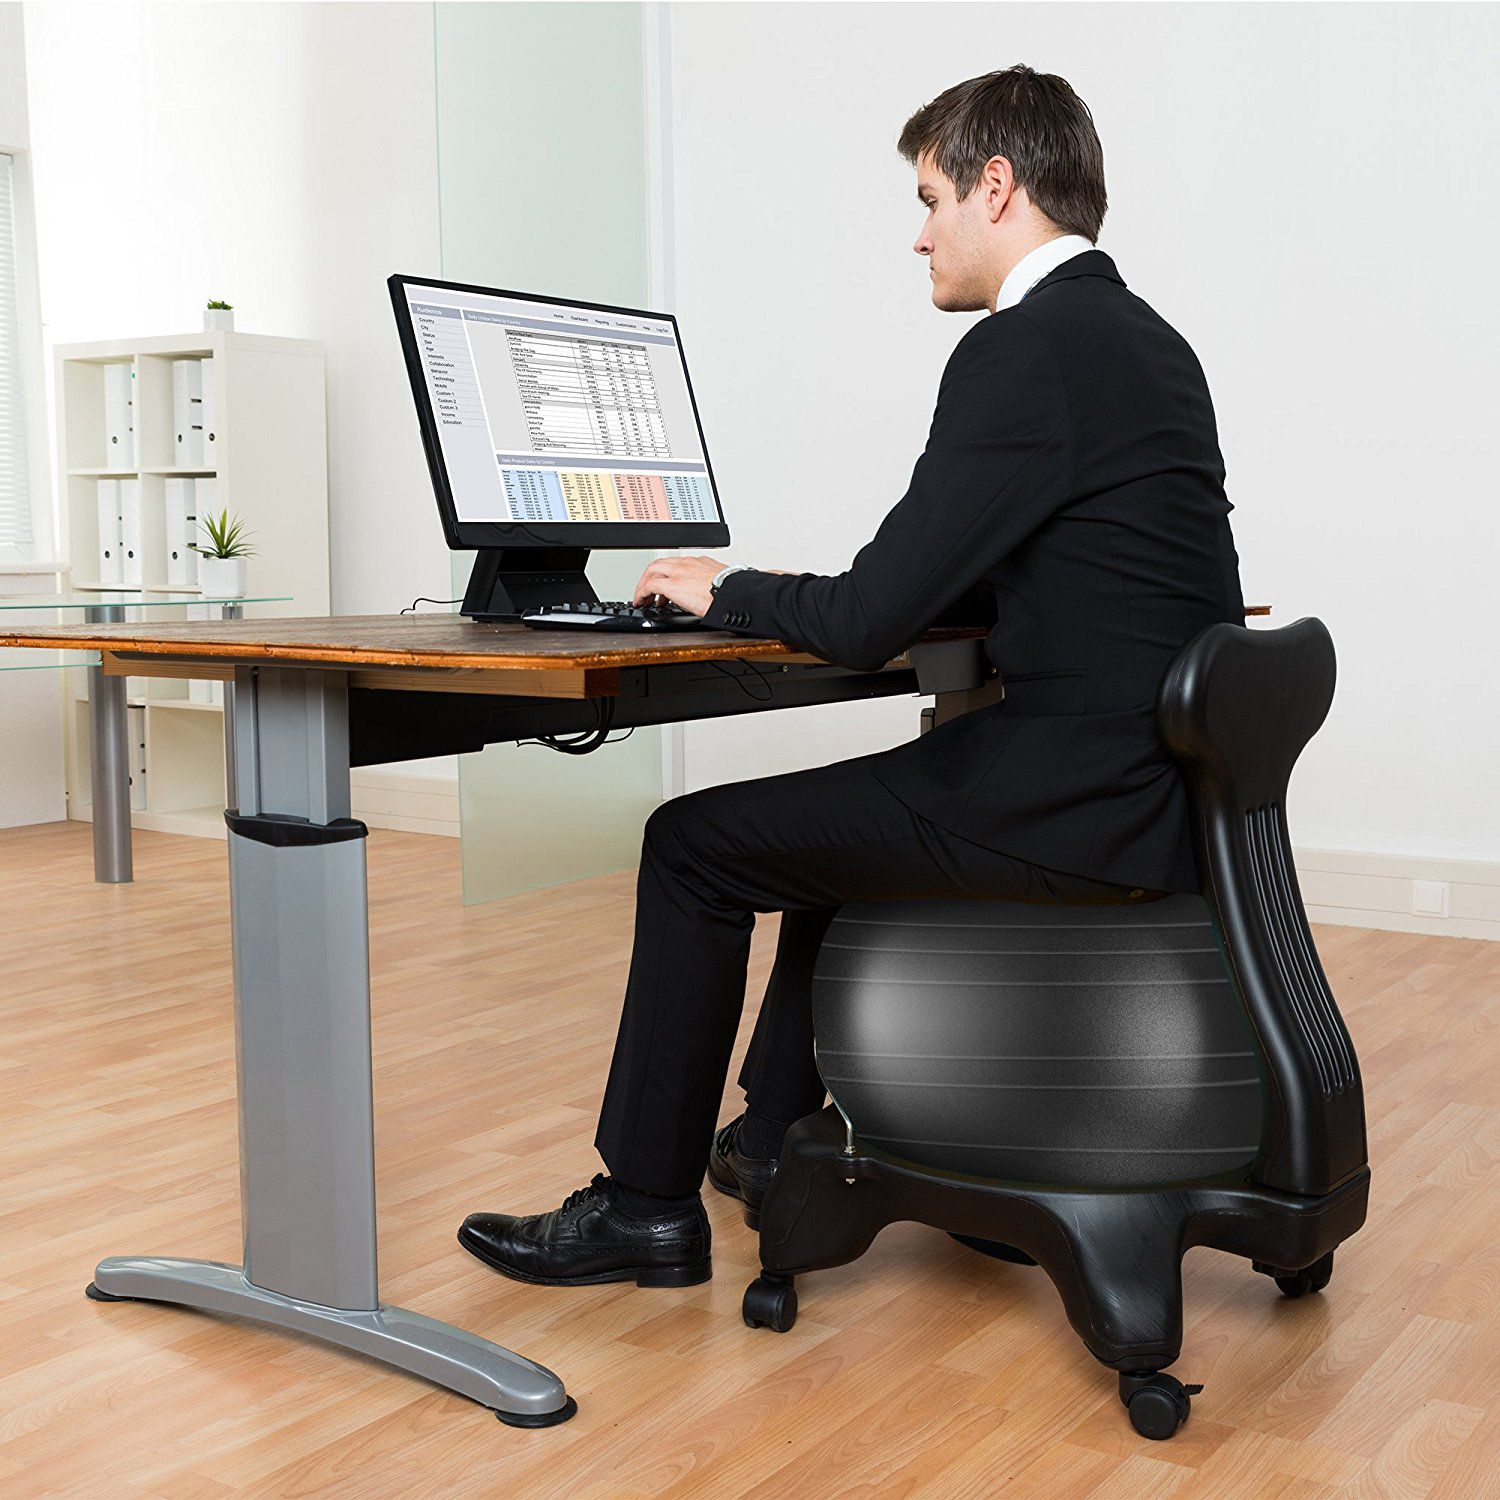 Best Balance Ball Chairs For Home Office Yoga Stability And Fitness Balance Ball Chair Ball Chair Exercise Ball Chairs